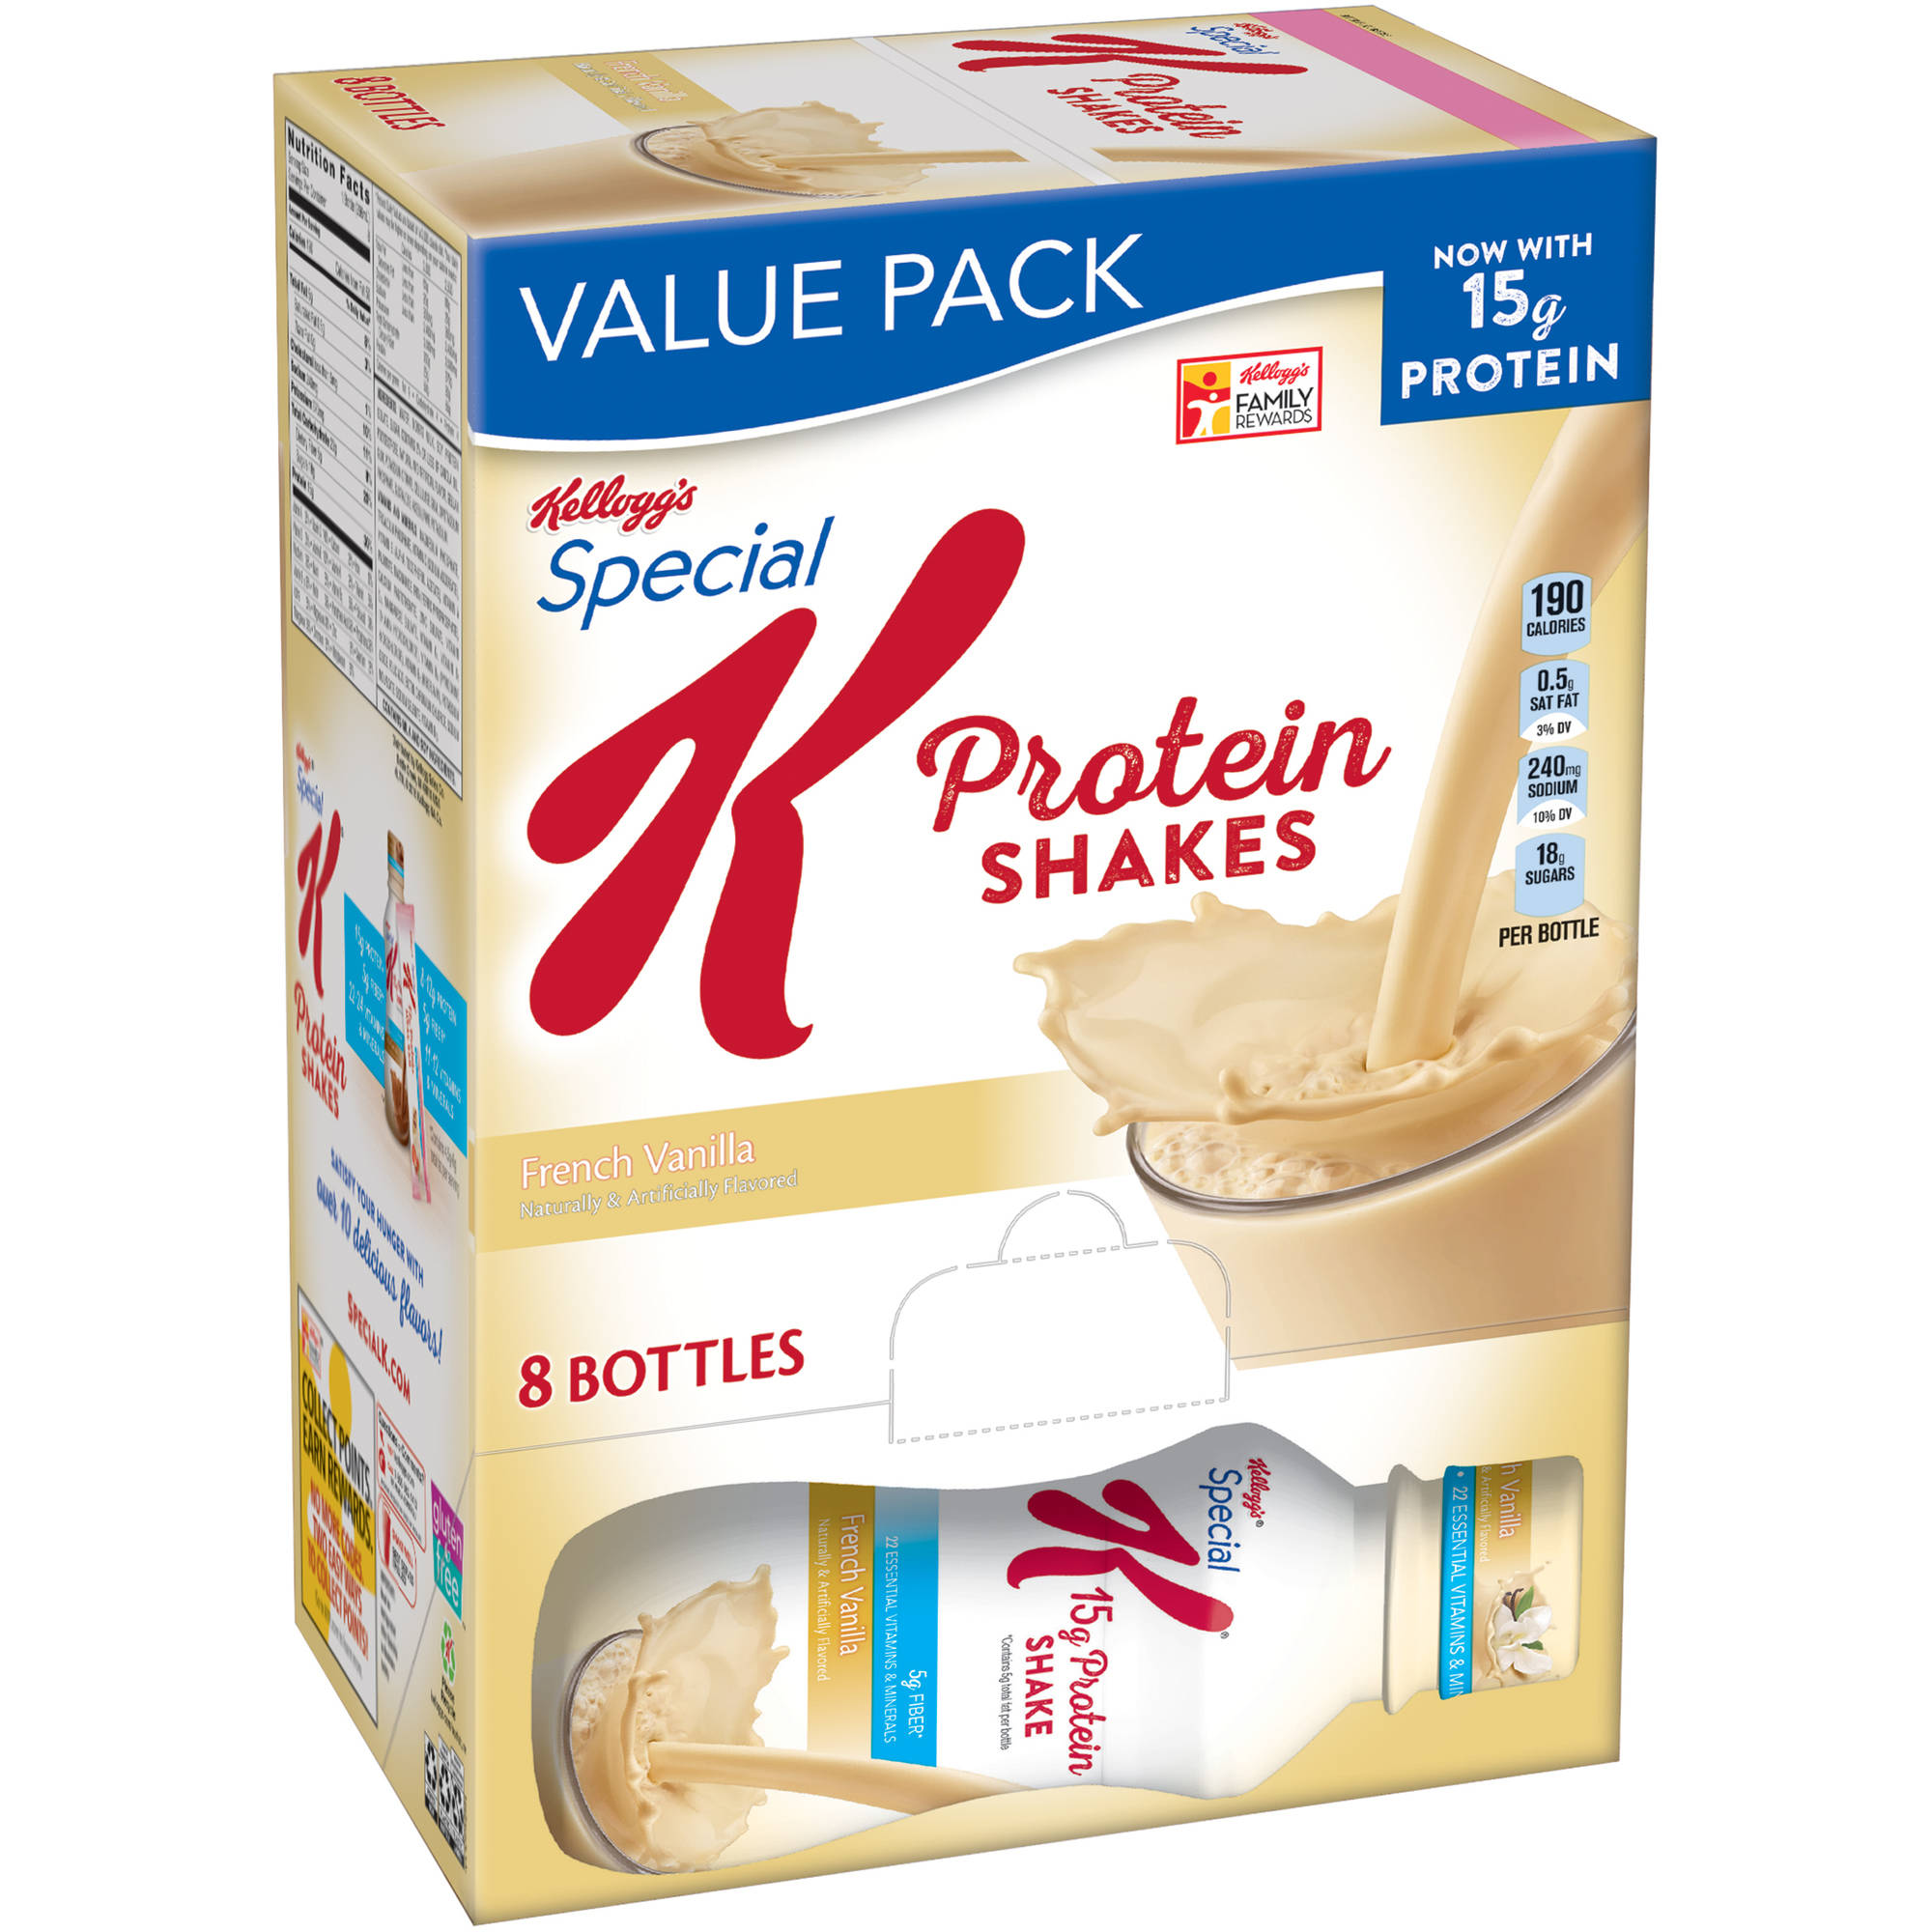 Kellogg's Special K French Vanilla Protein Shakes, 8 count